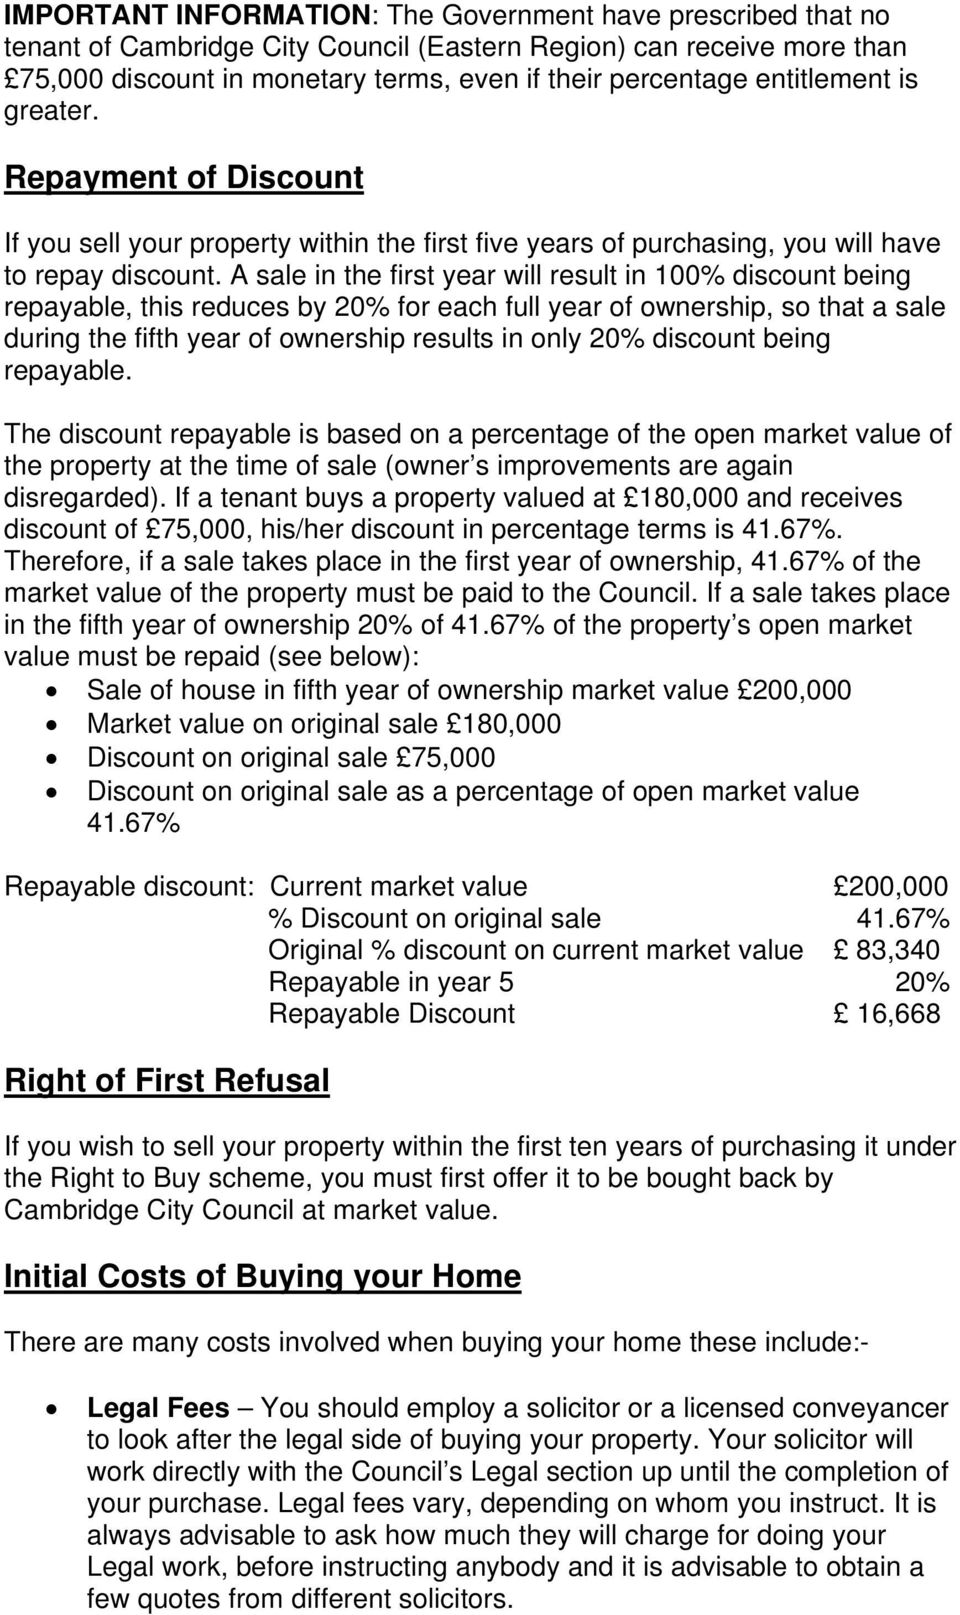 A sale in the first year will result in 100% discount being repayable, this reduces by 20% for each full year of ownership, so that a sale during the fifth year of ownership results in only 20%